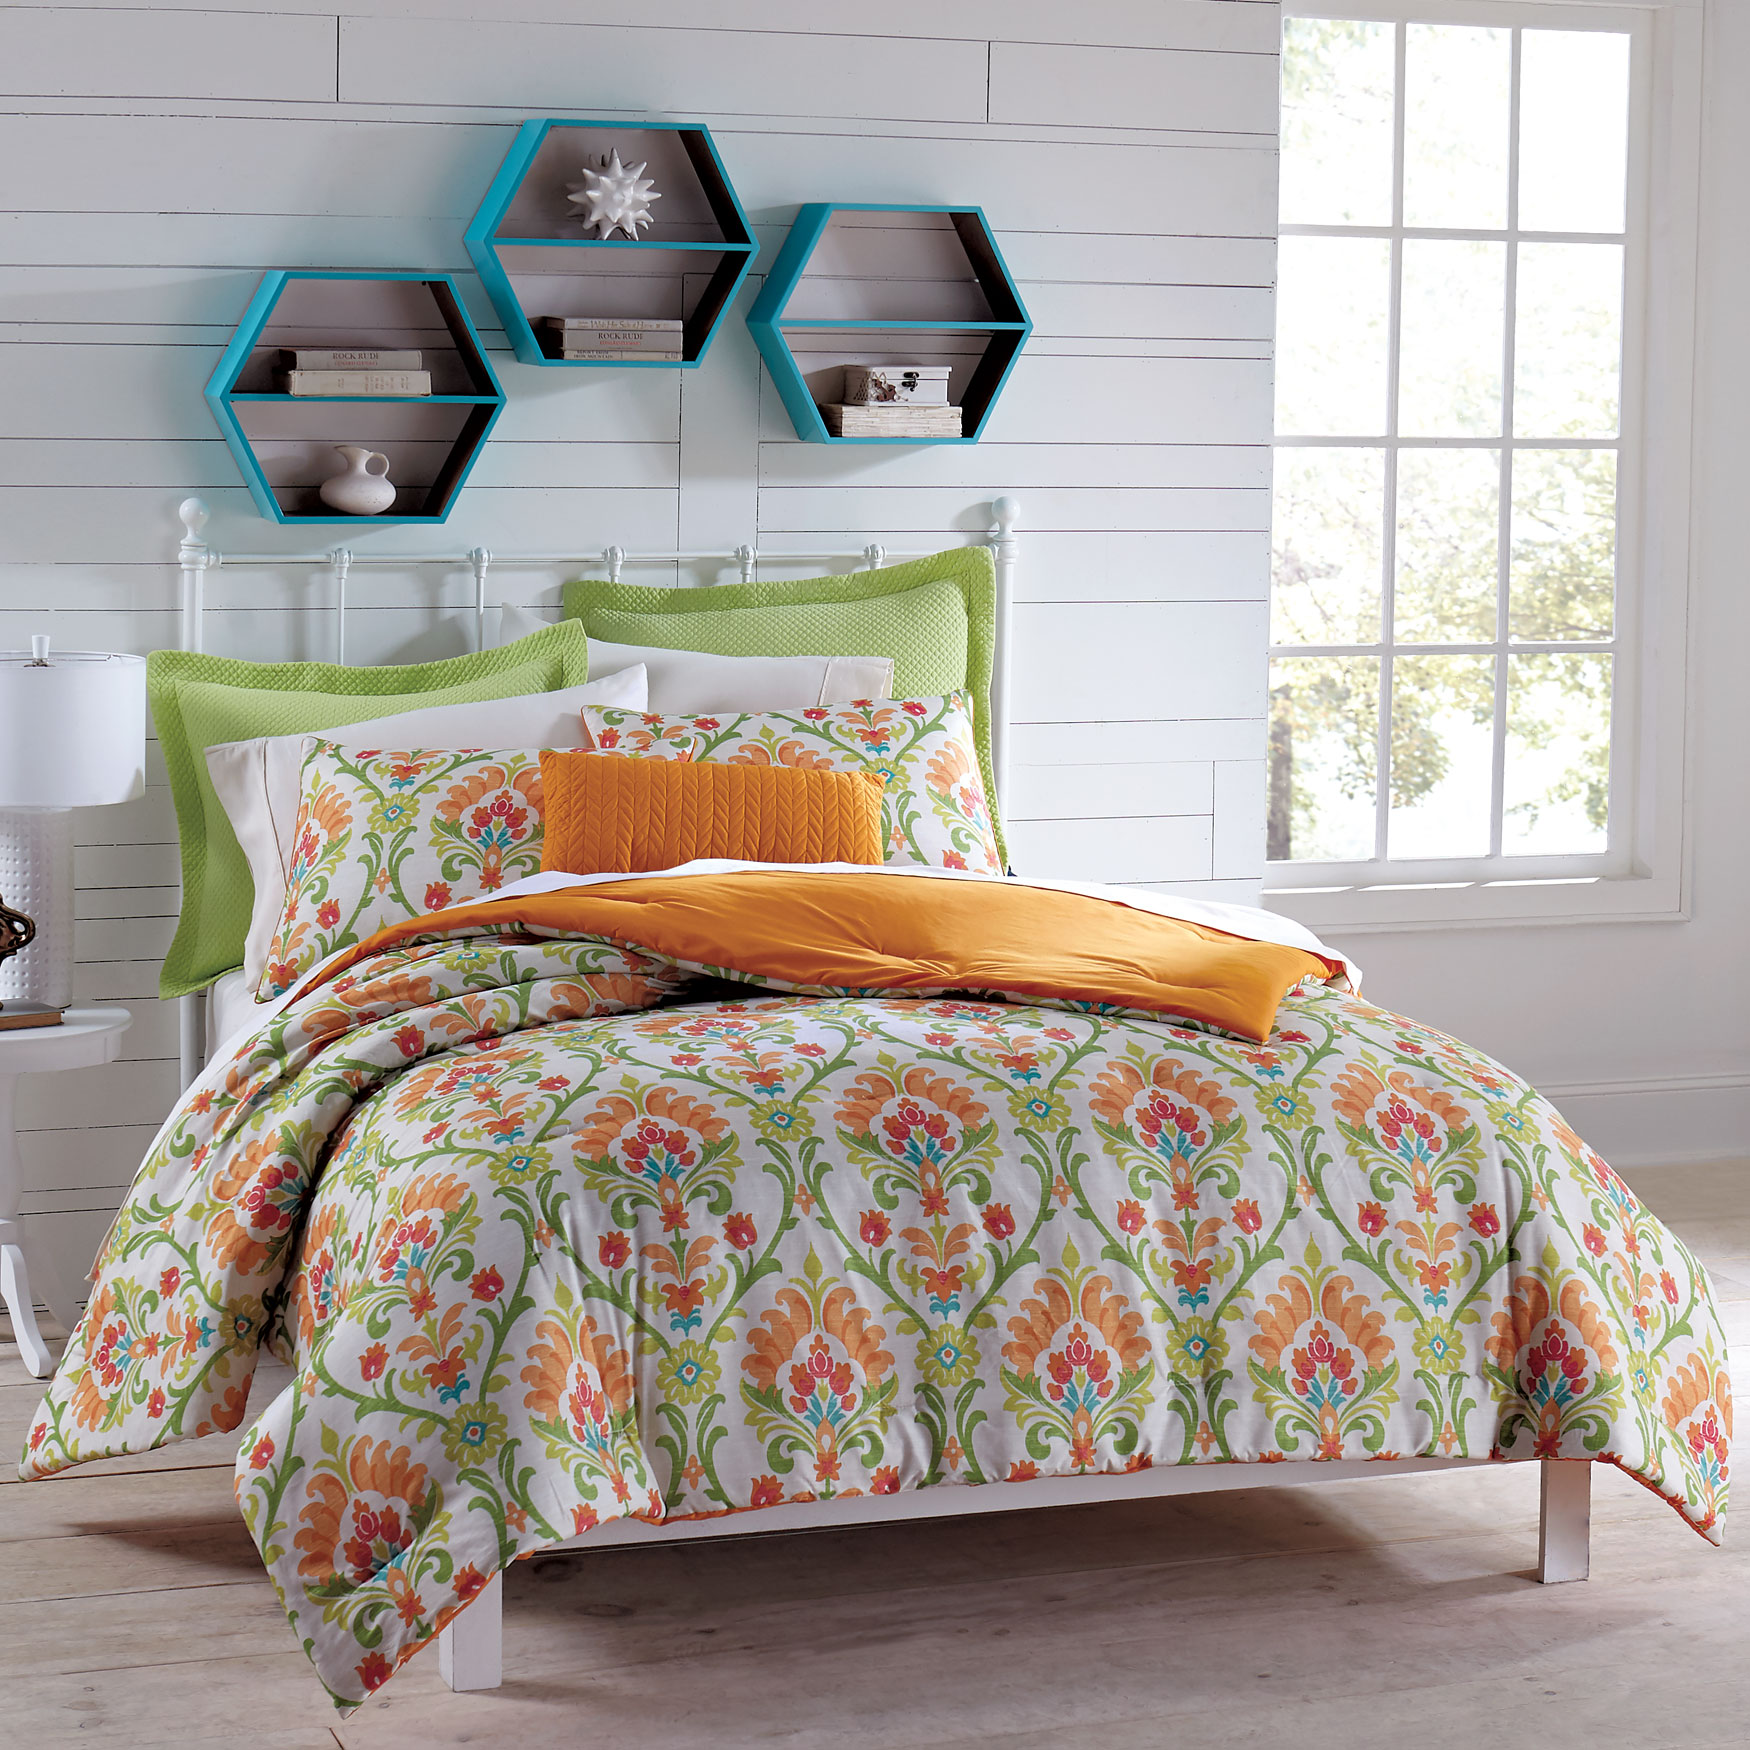 Antigua Floral Pattern Comforter,